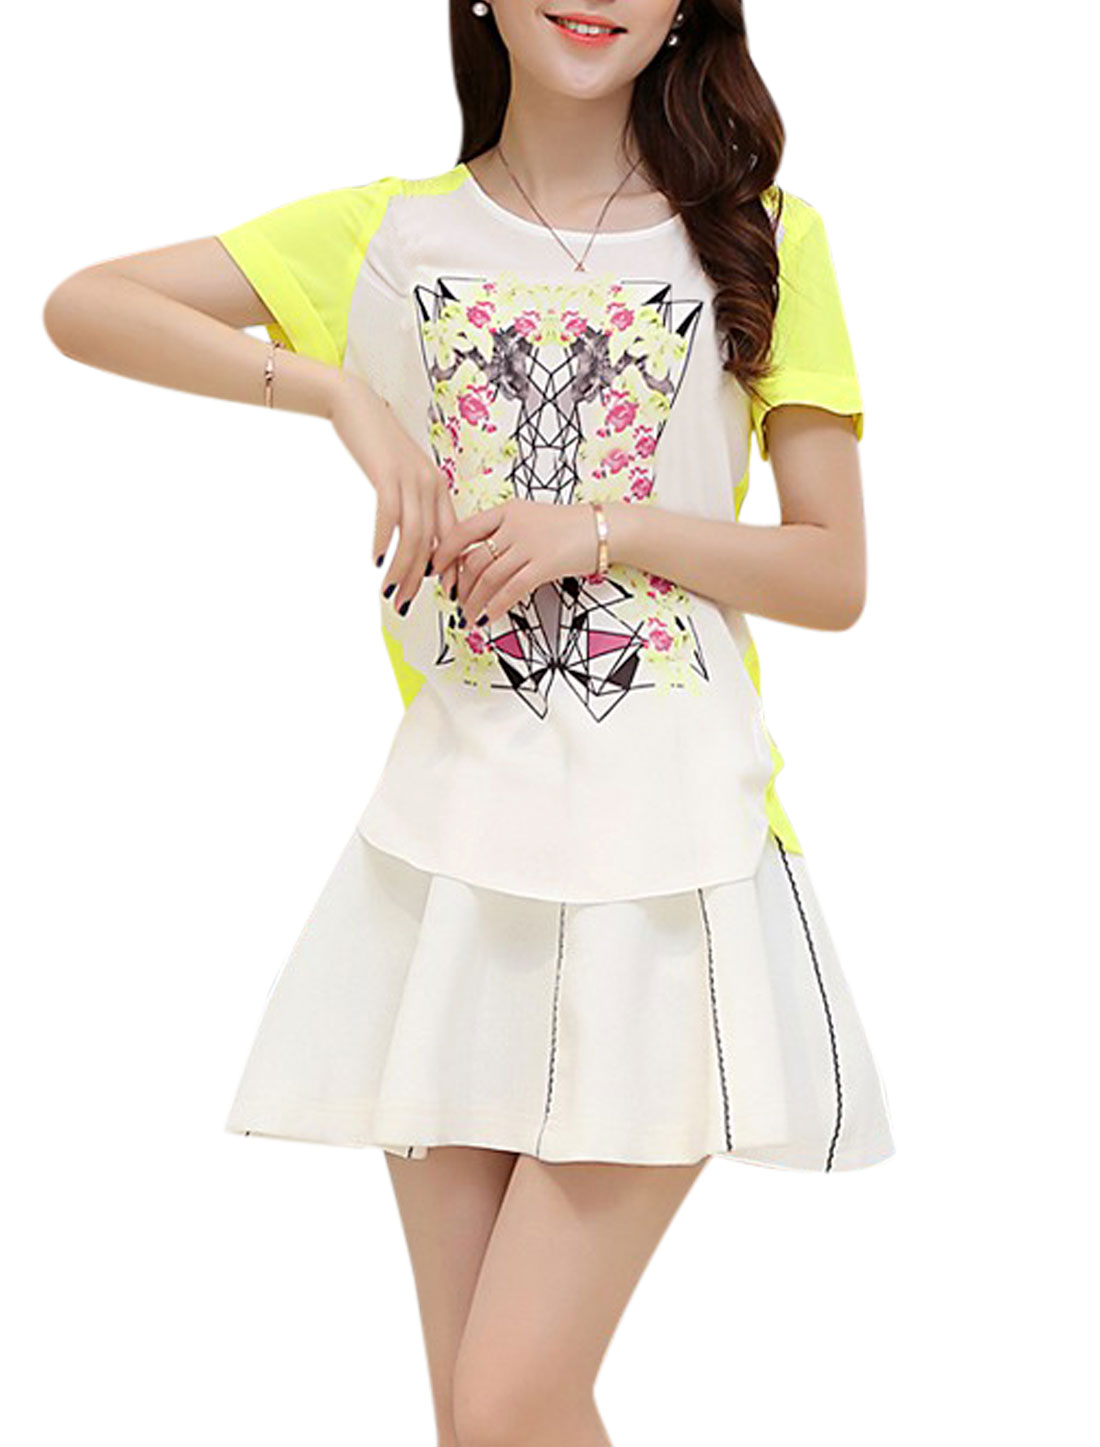 Lady Short Sleeve Floral Prints Colorblock Chiffon Top White Yellow S